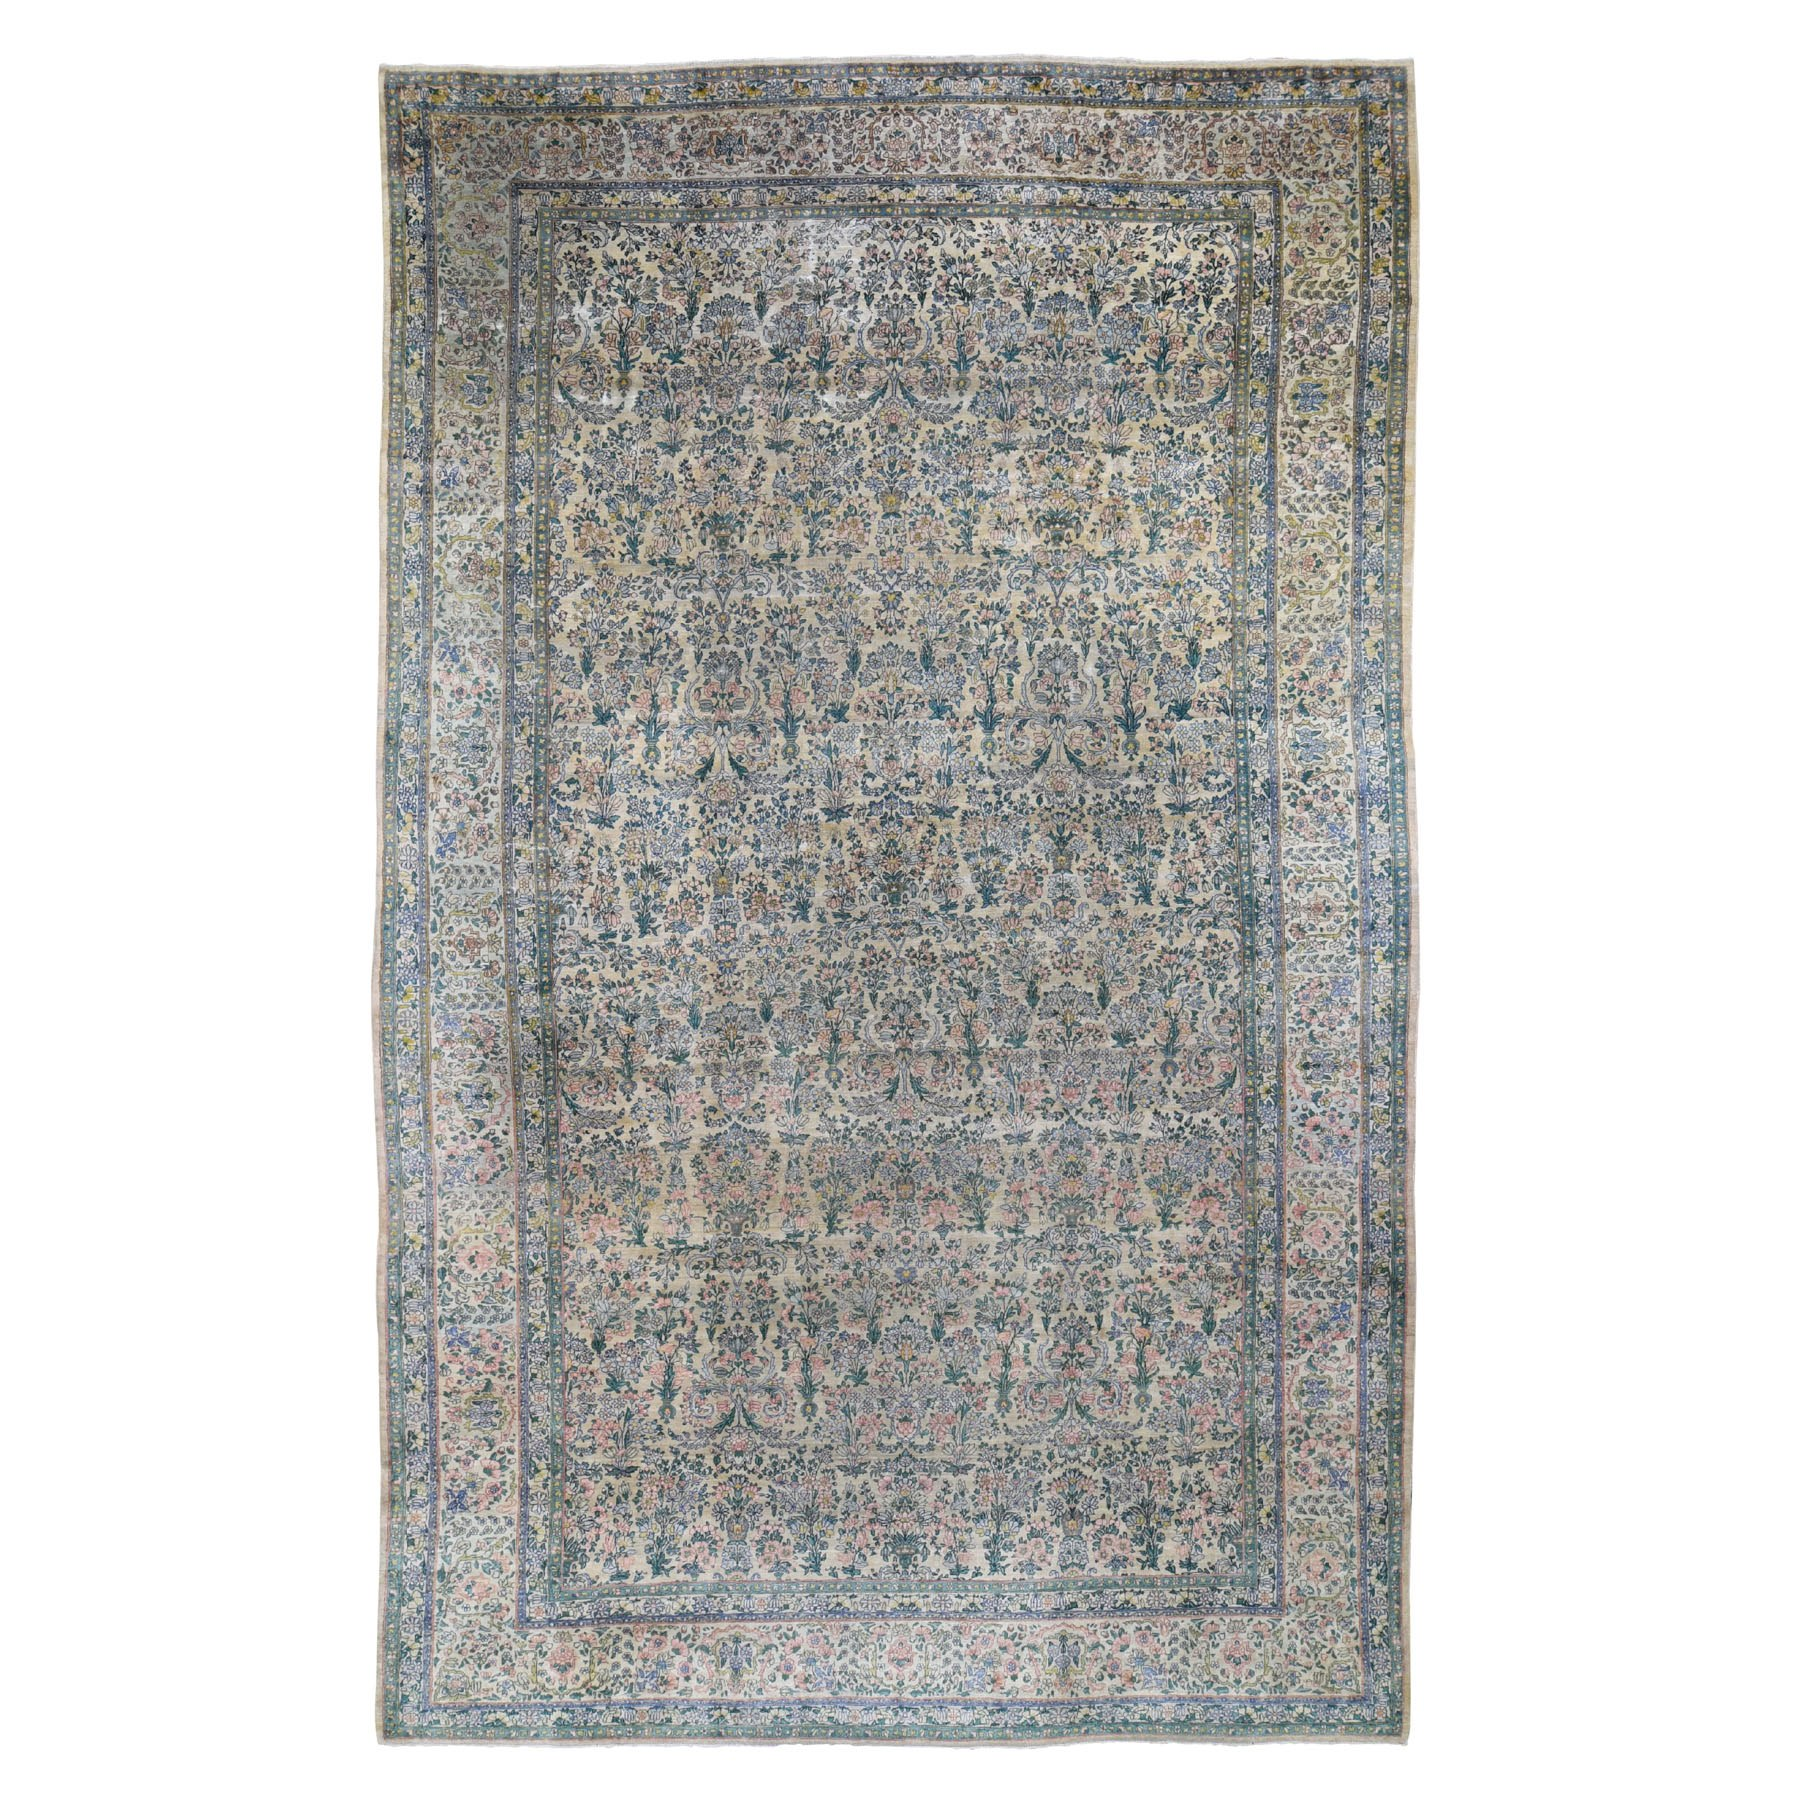 Antique Collection Hand Knotted Beige Rug No: 196920